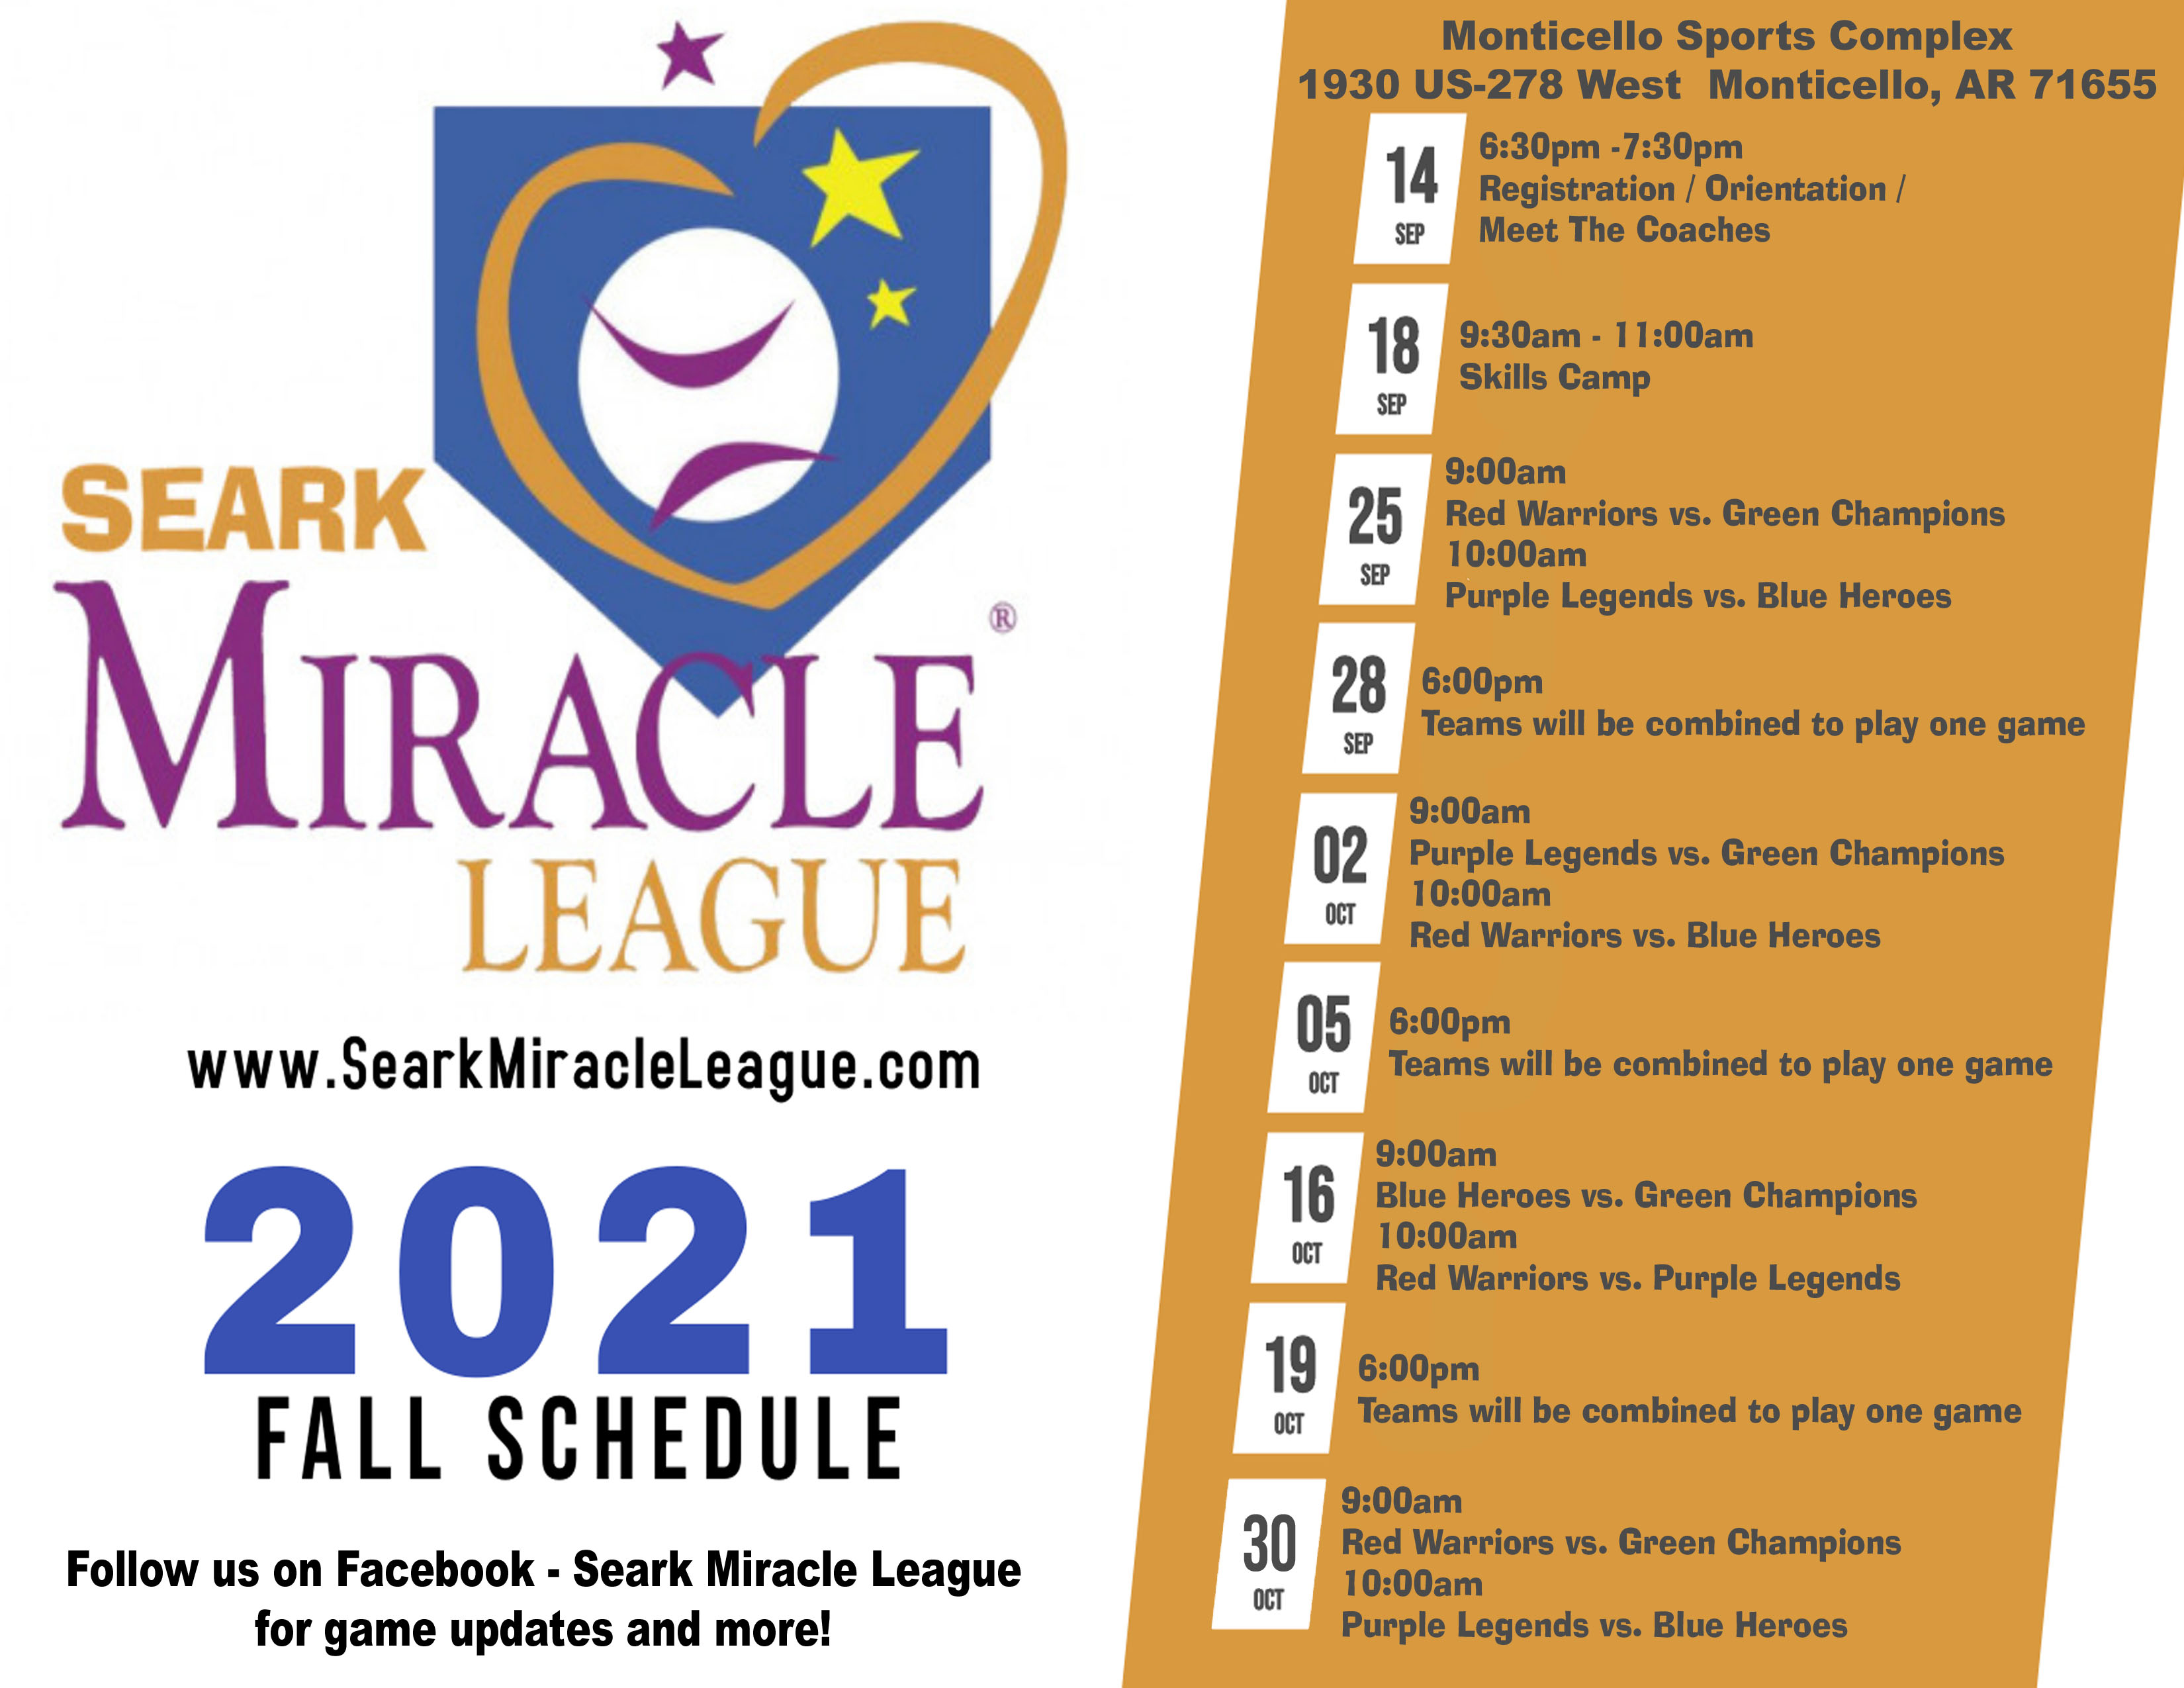 SearkMiracleLeagueFall2021Schedule